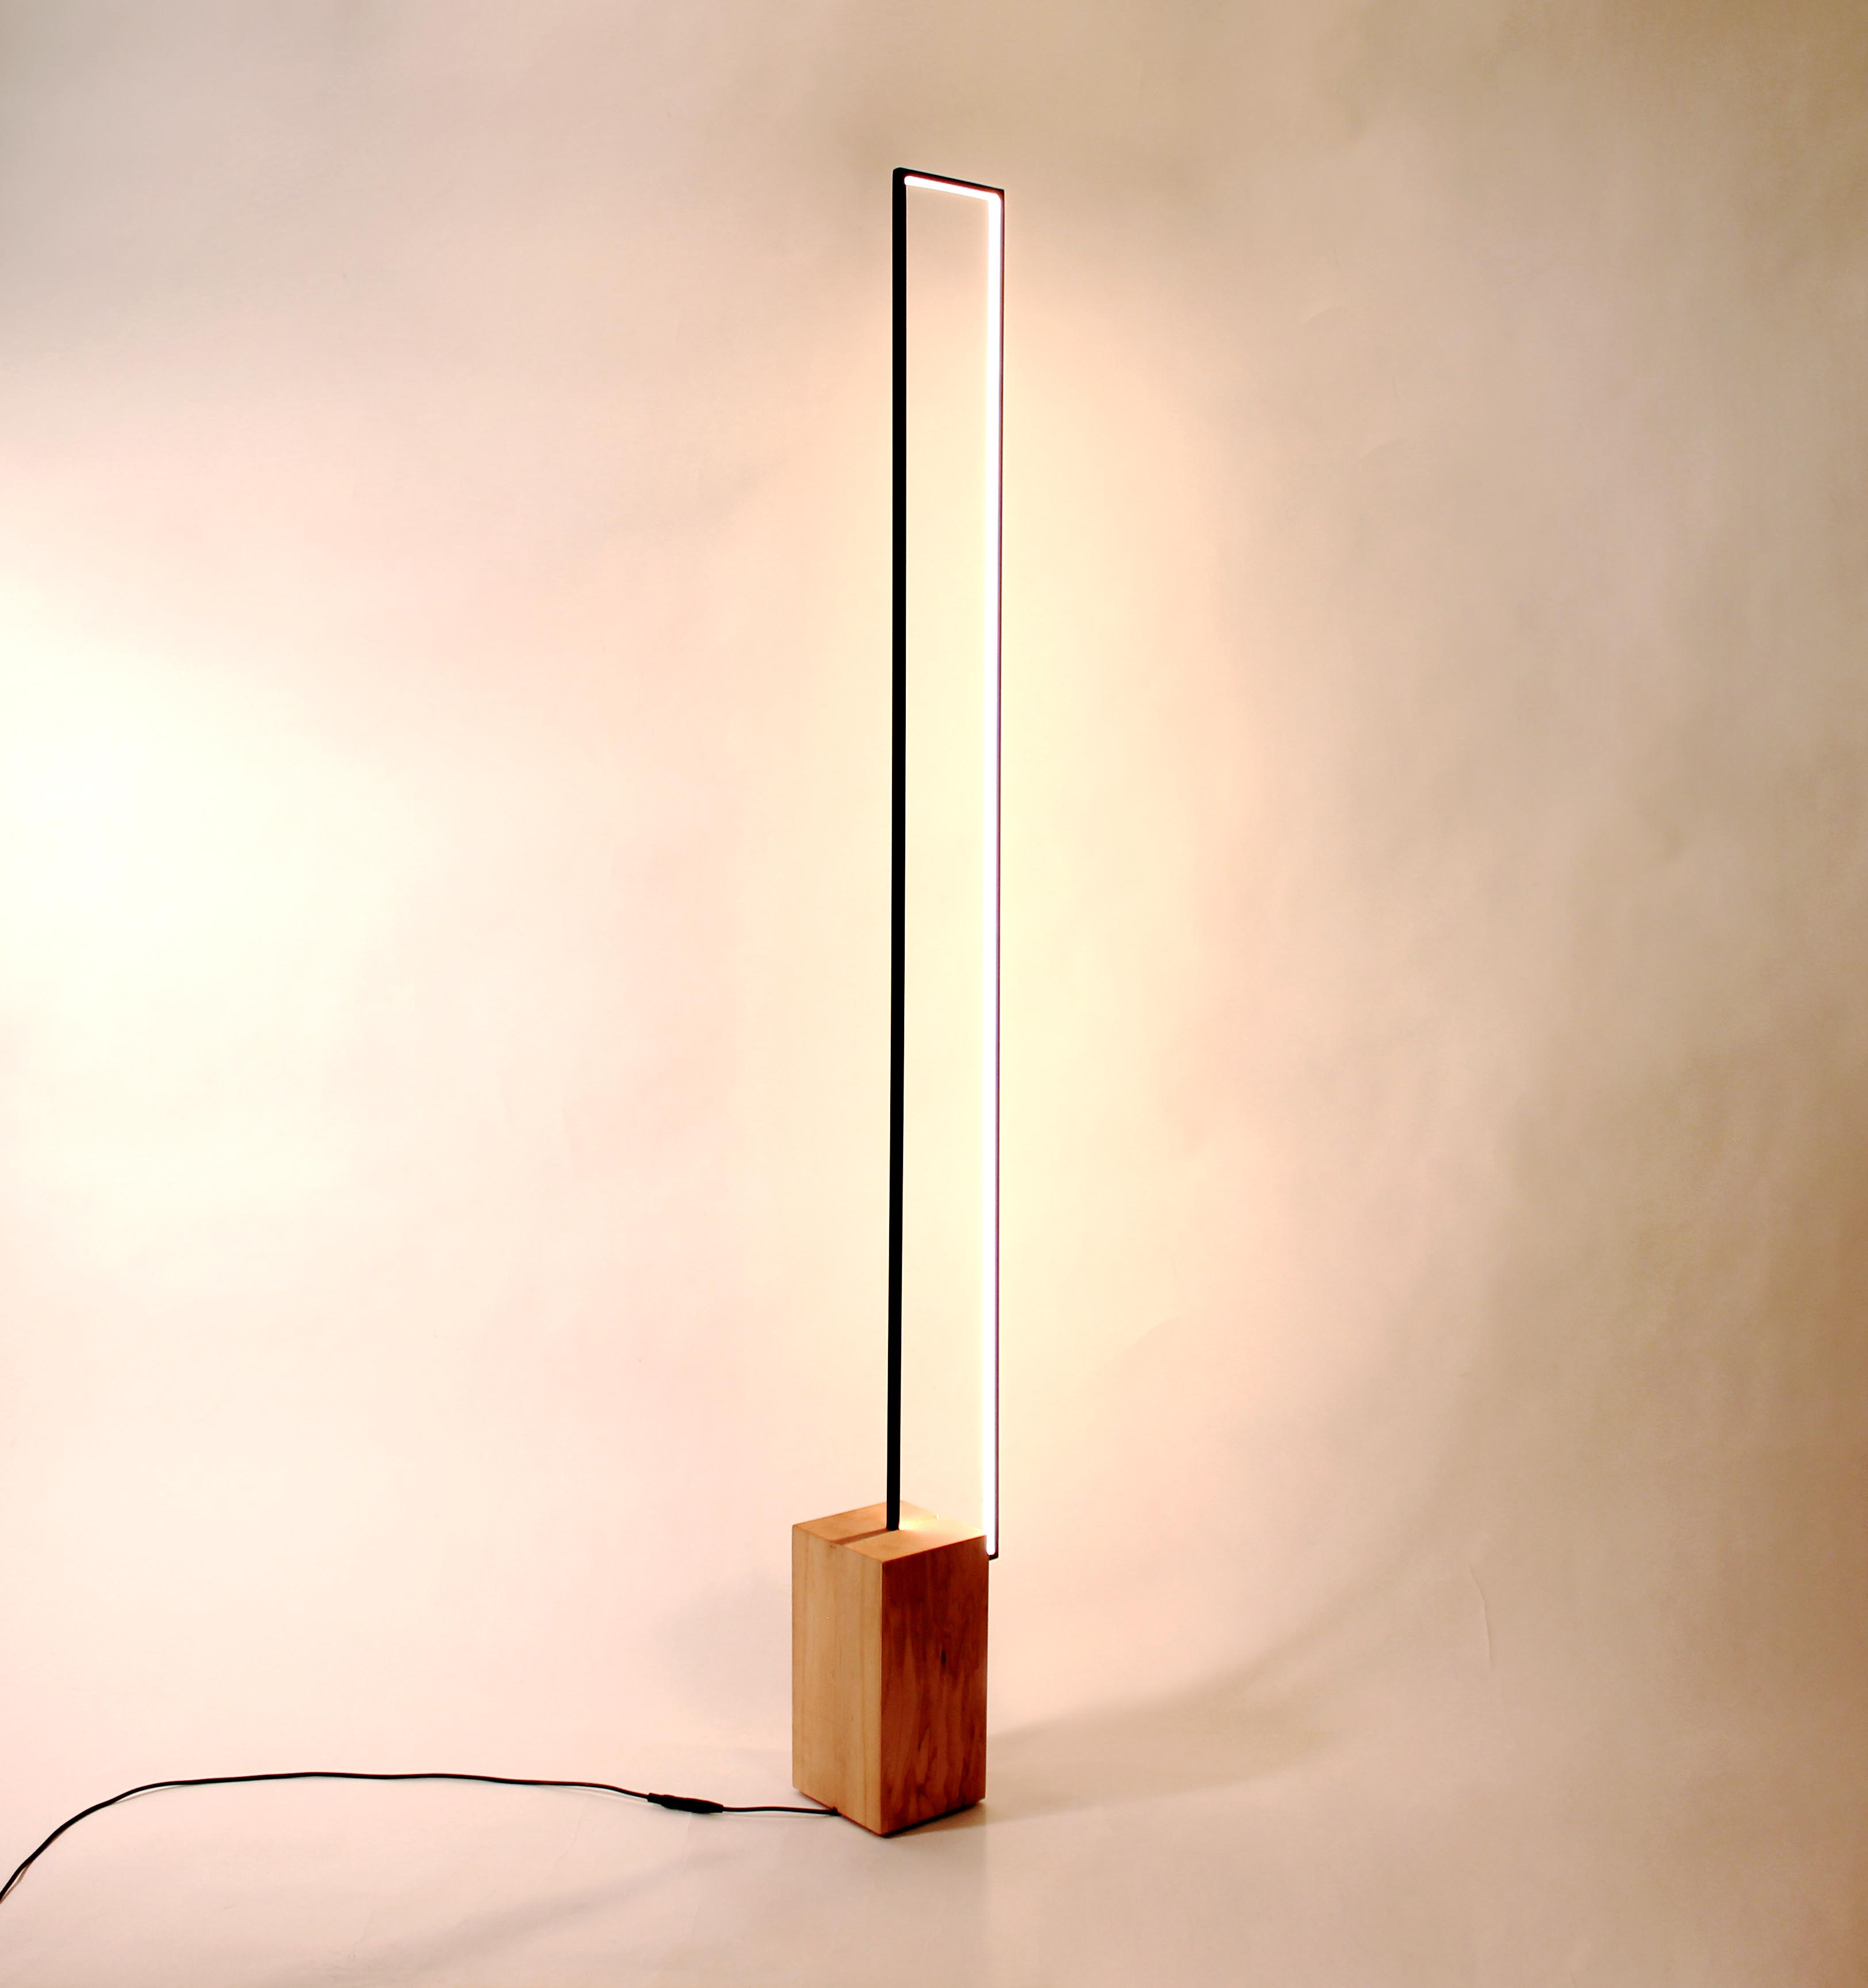 Minimalist Floor Lamp Stiiq Minimalist Floor Lamp Lumicrest High Cri Led Lighting